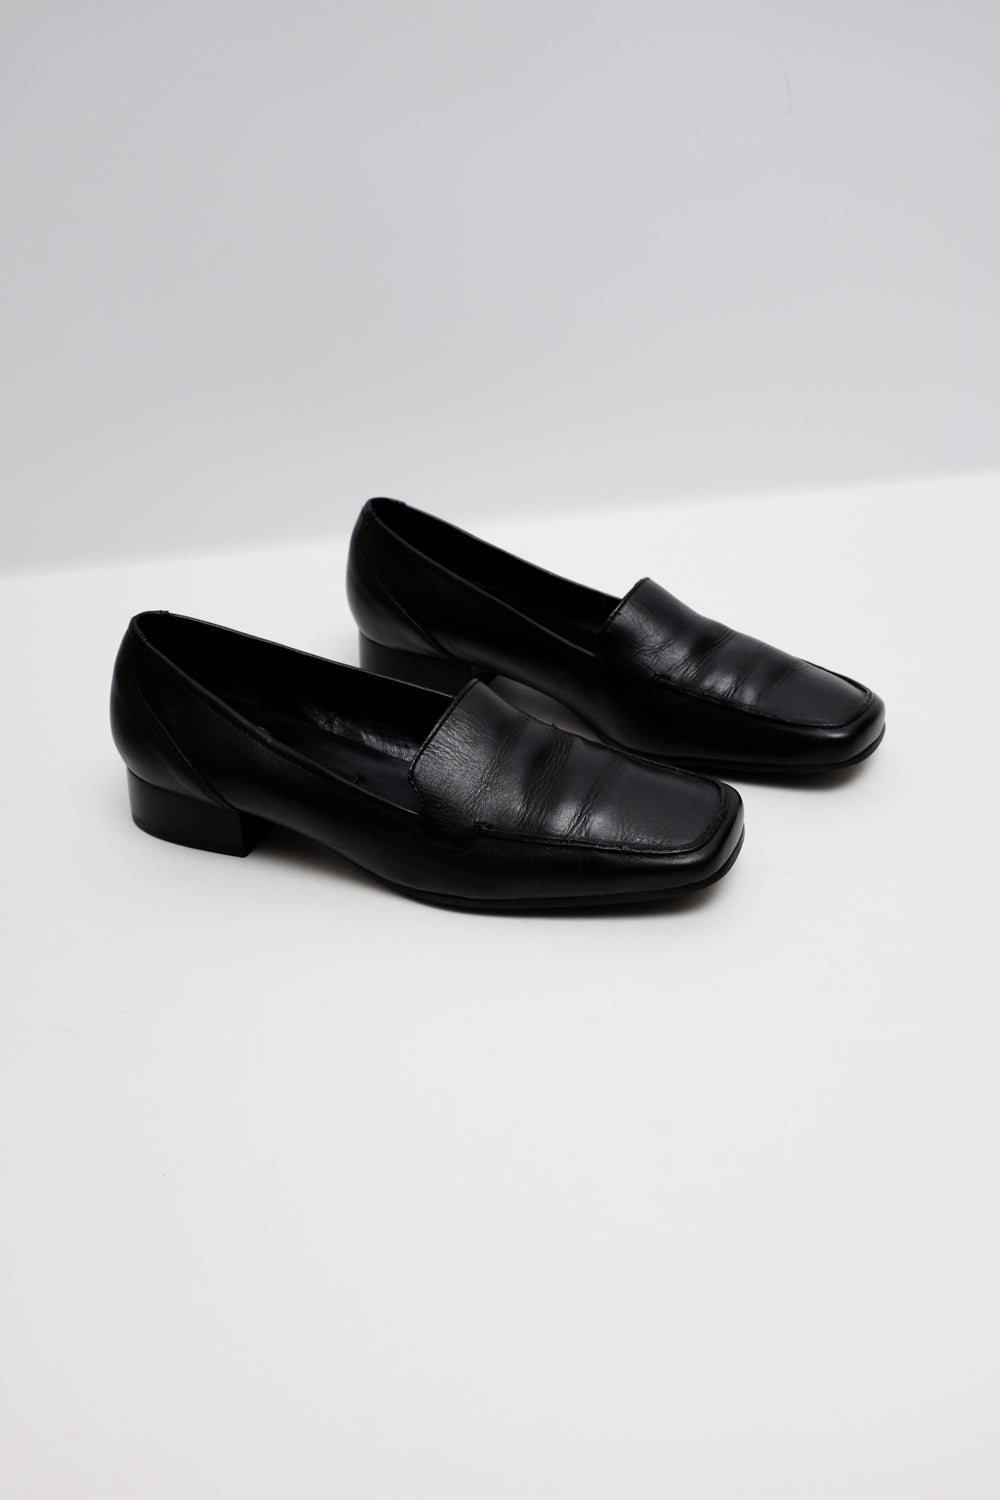 0022_AIGNER BLACK LEATHER LOAFER